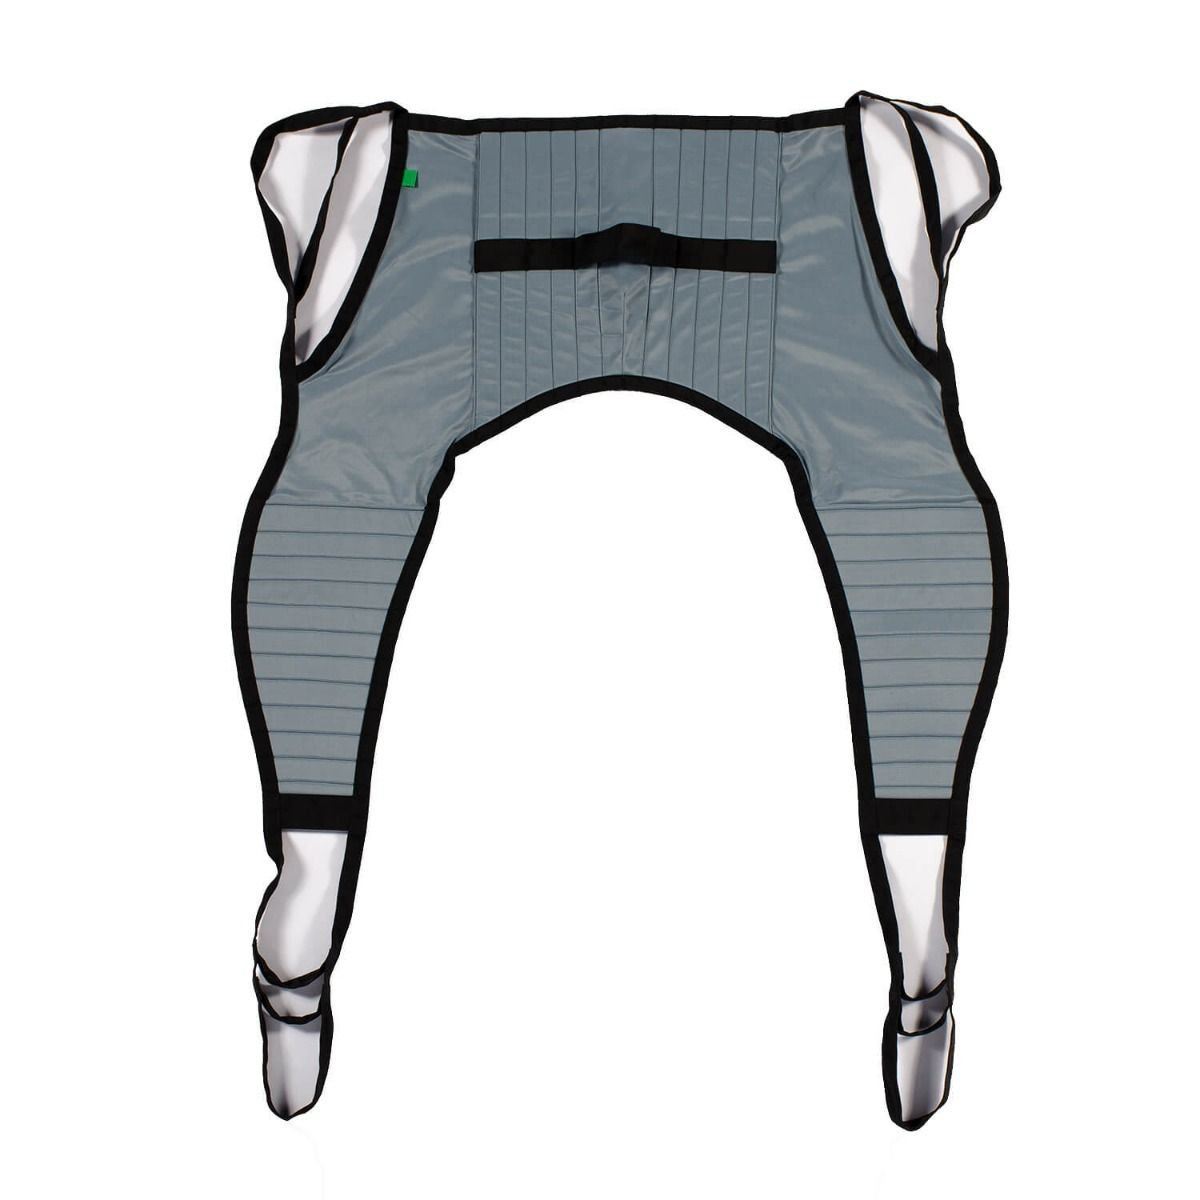 Padded U-Sling Without Head Support, Universal Patient Lift Sling, Size Large, 600lb Capacity by Patient Aid (Image #6)